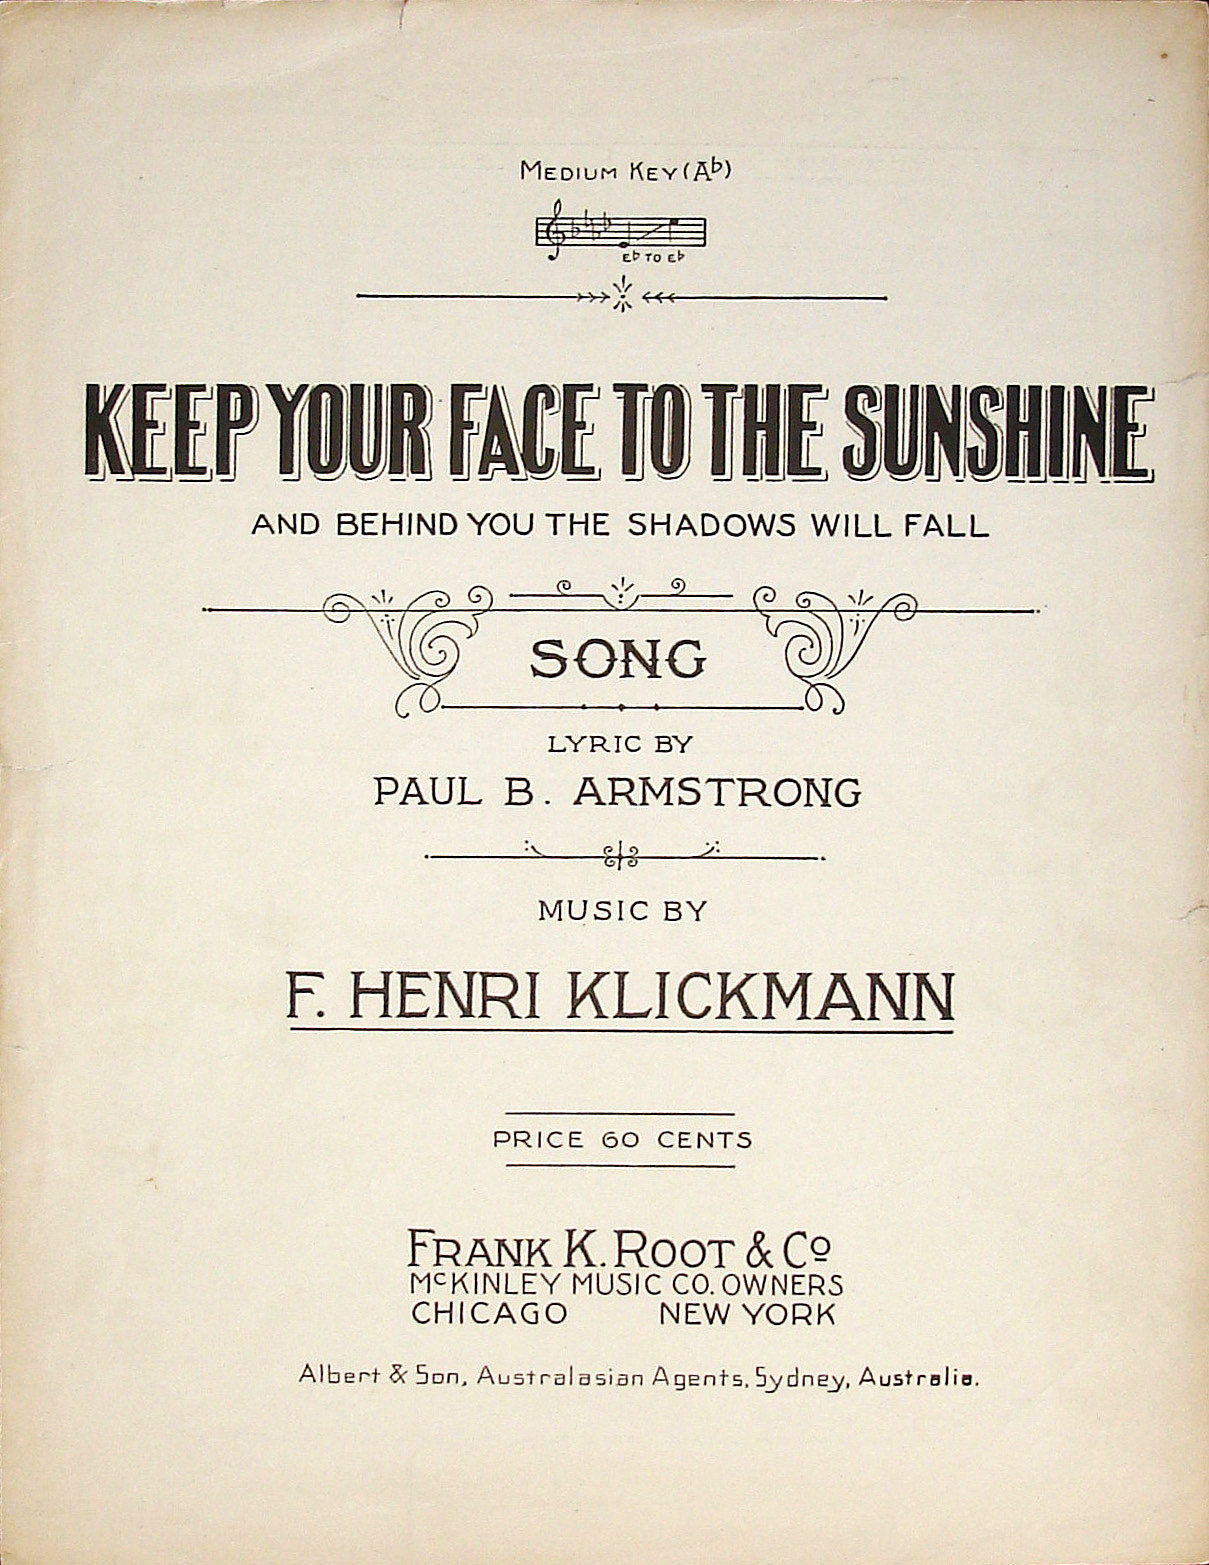 Keep Your Face to the Sunshine - Paul B. Armstrong, F. Henri Klickmann - Large Format